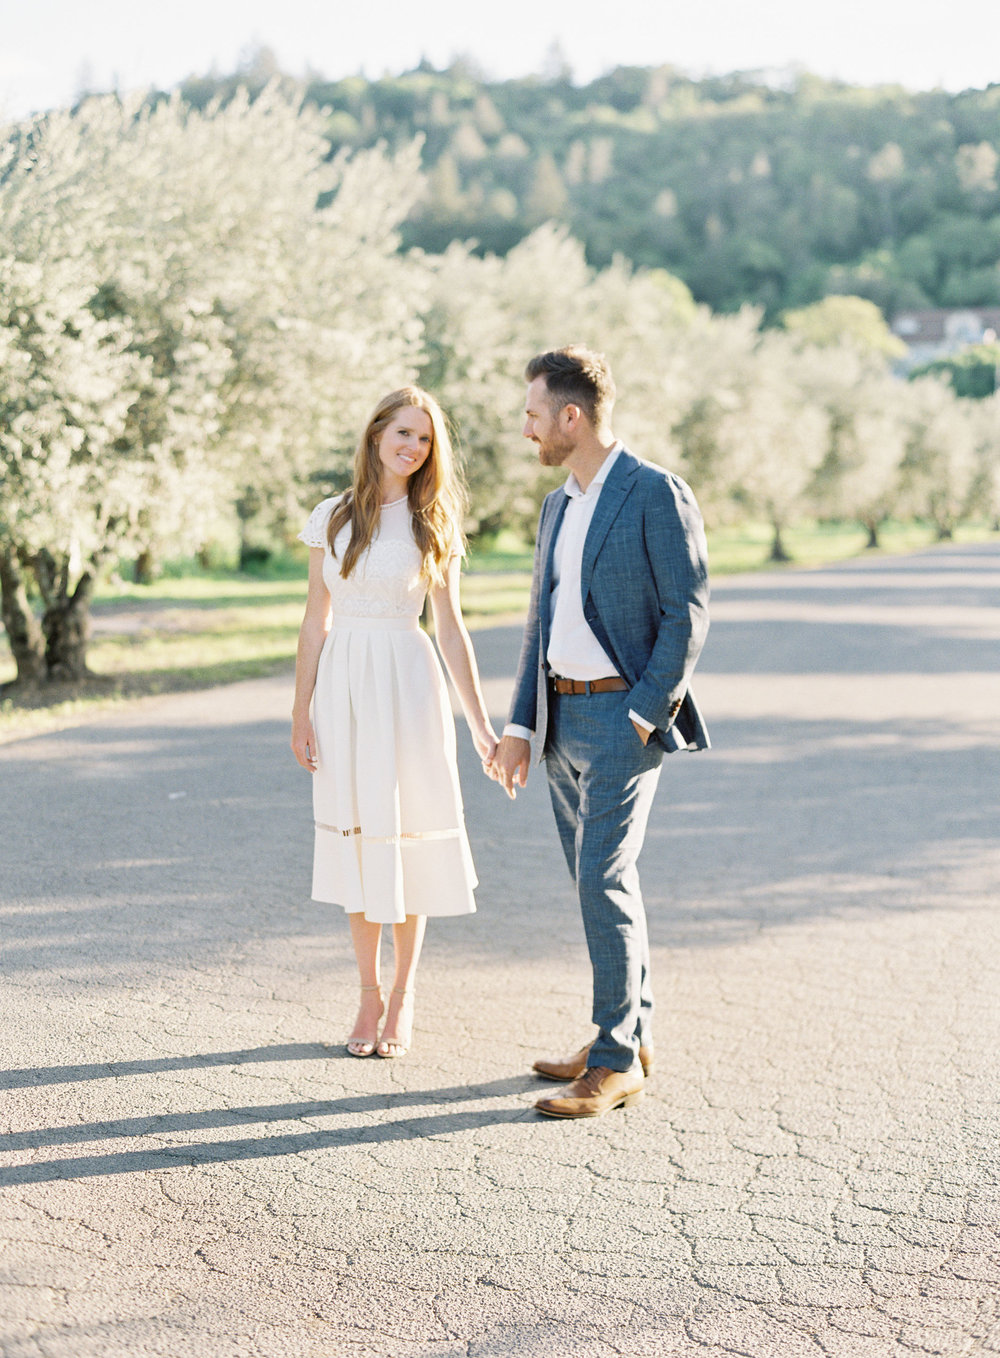 Meghan Mehan Photography - Napa Engagement Session 001.jpg